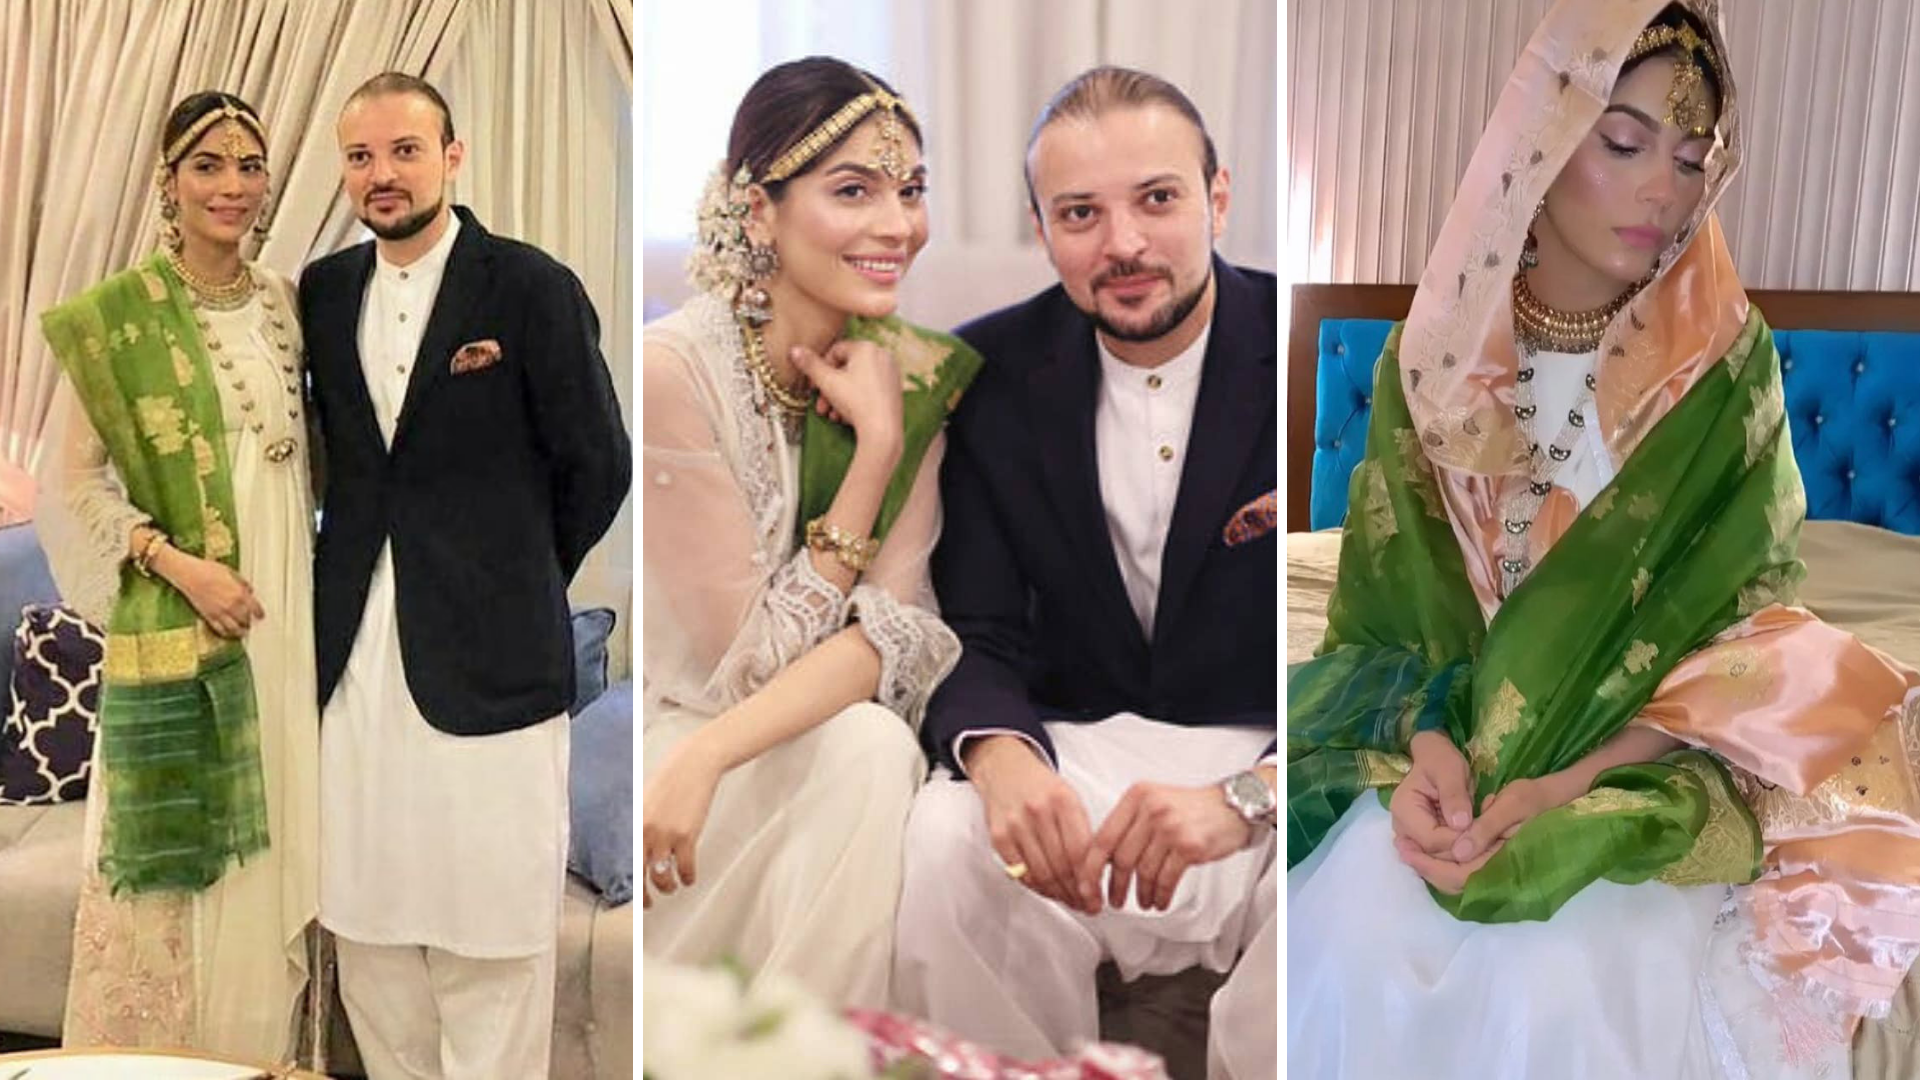 Model Amna Babar Is Married, And We Applaud Her for Going for A Simplistic Wedding!